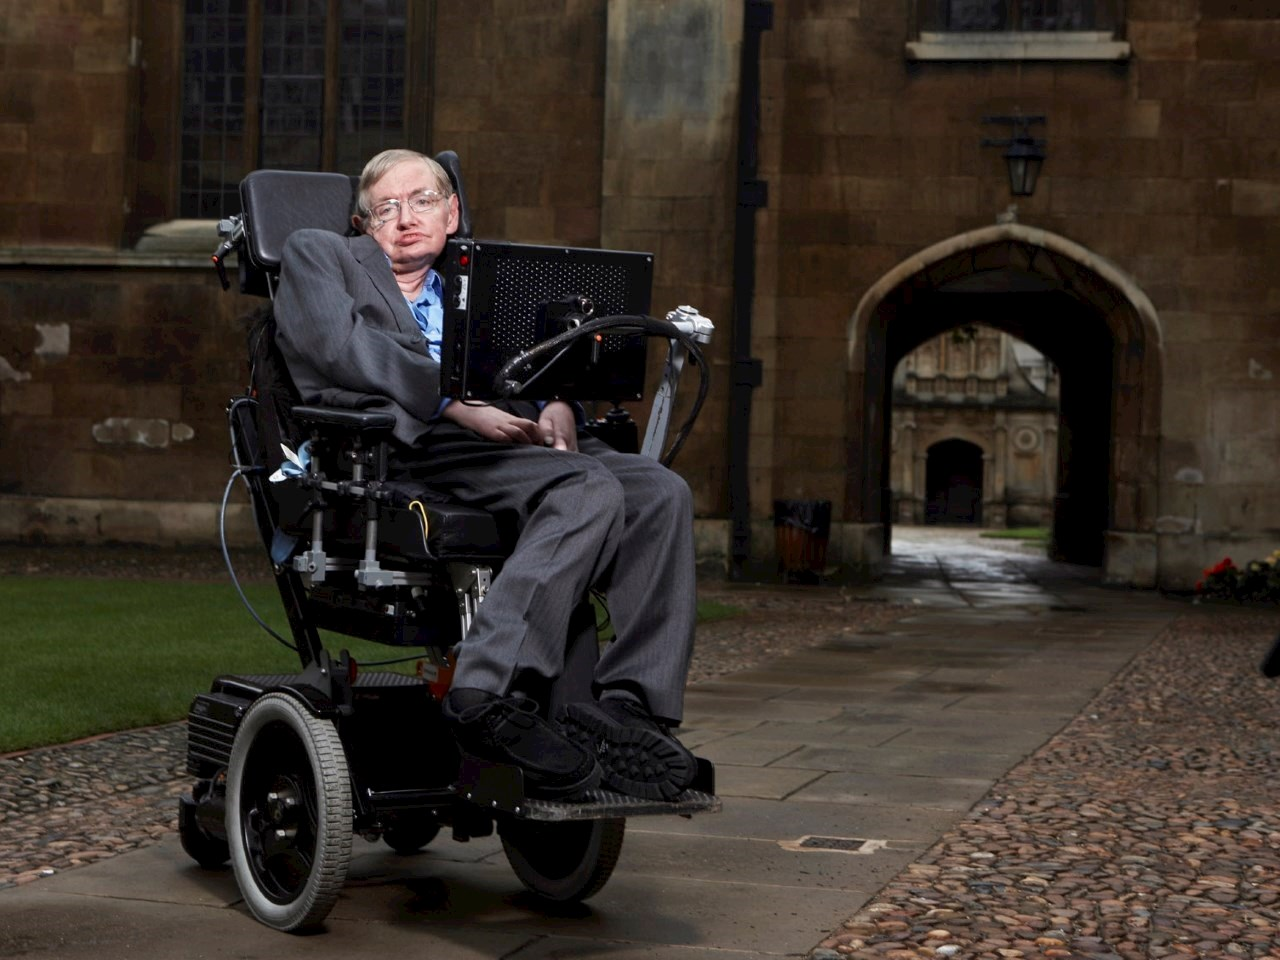 Stephen Hawking at Gonville & Caius College, Cambridge